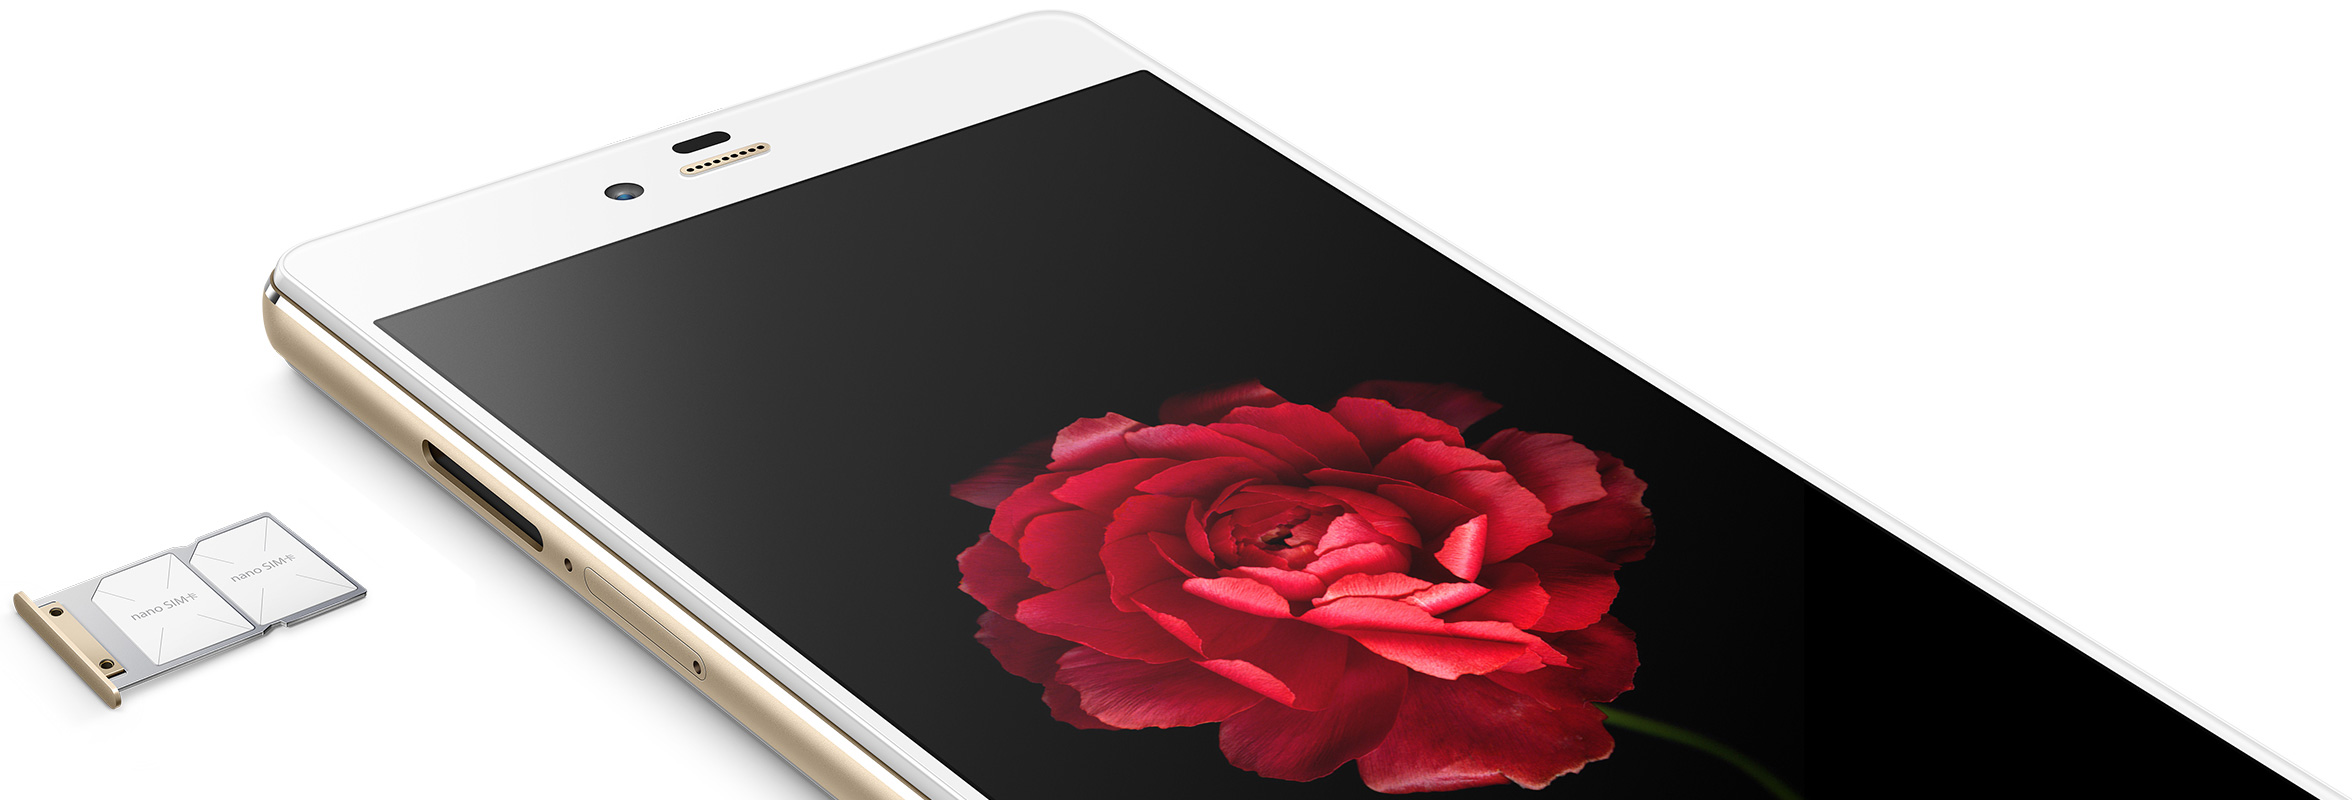 Nubia Z9 Max Performance Smartphone Mobile Photography Expert Zte Dual Cards Standby Coverage Wherever You Go